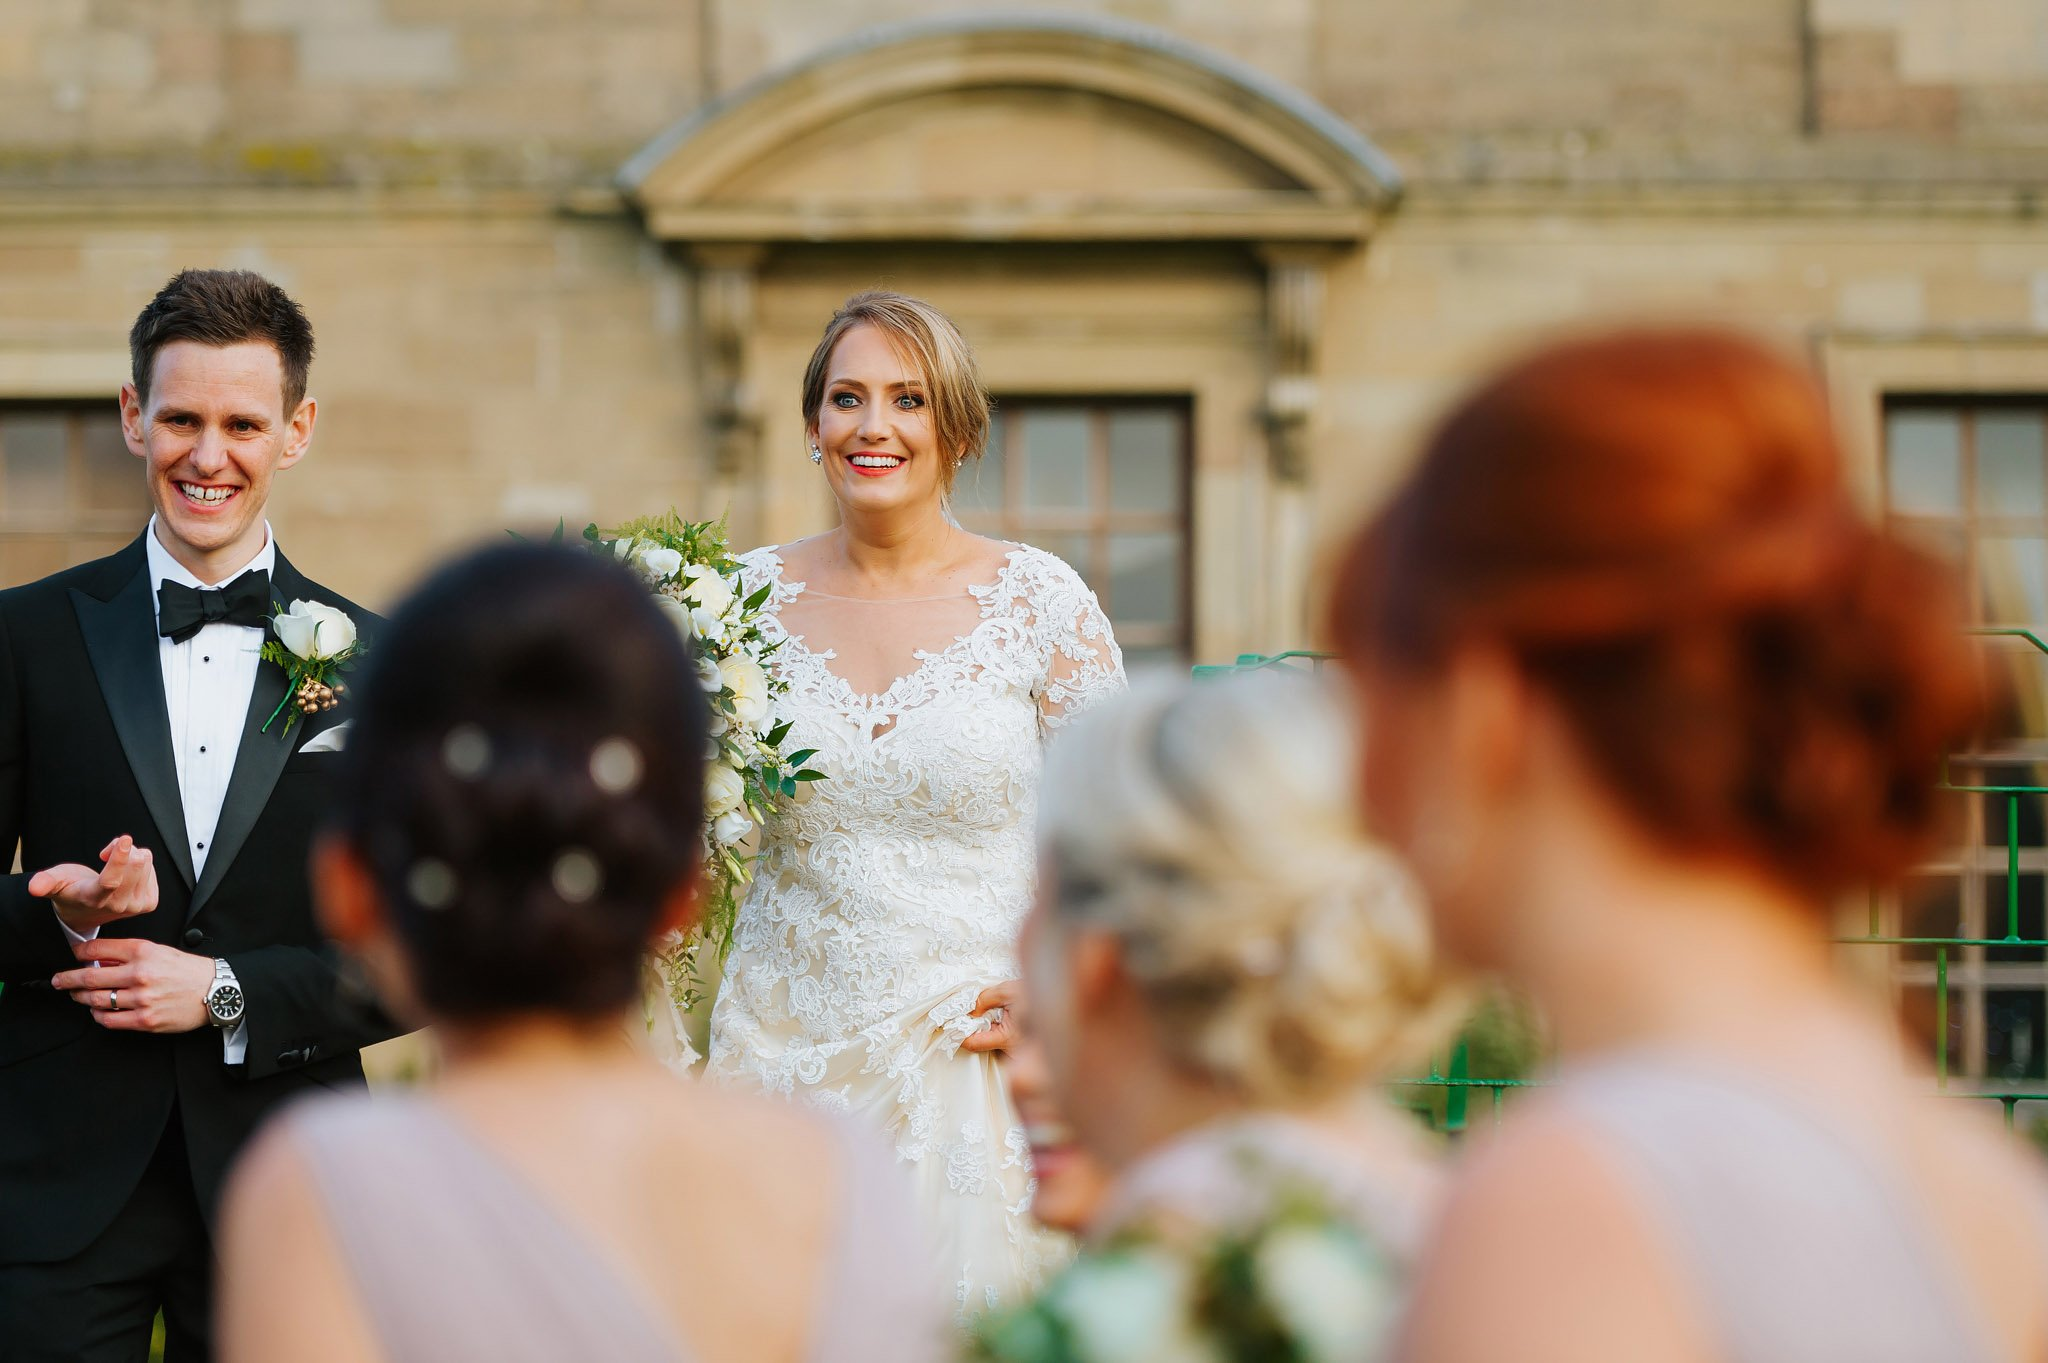 Coombe Abbey wedding in Coventry, Warwickshire - Sam + Matt 52